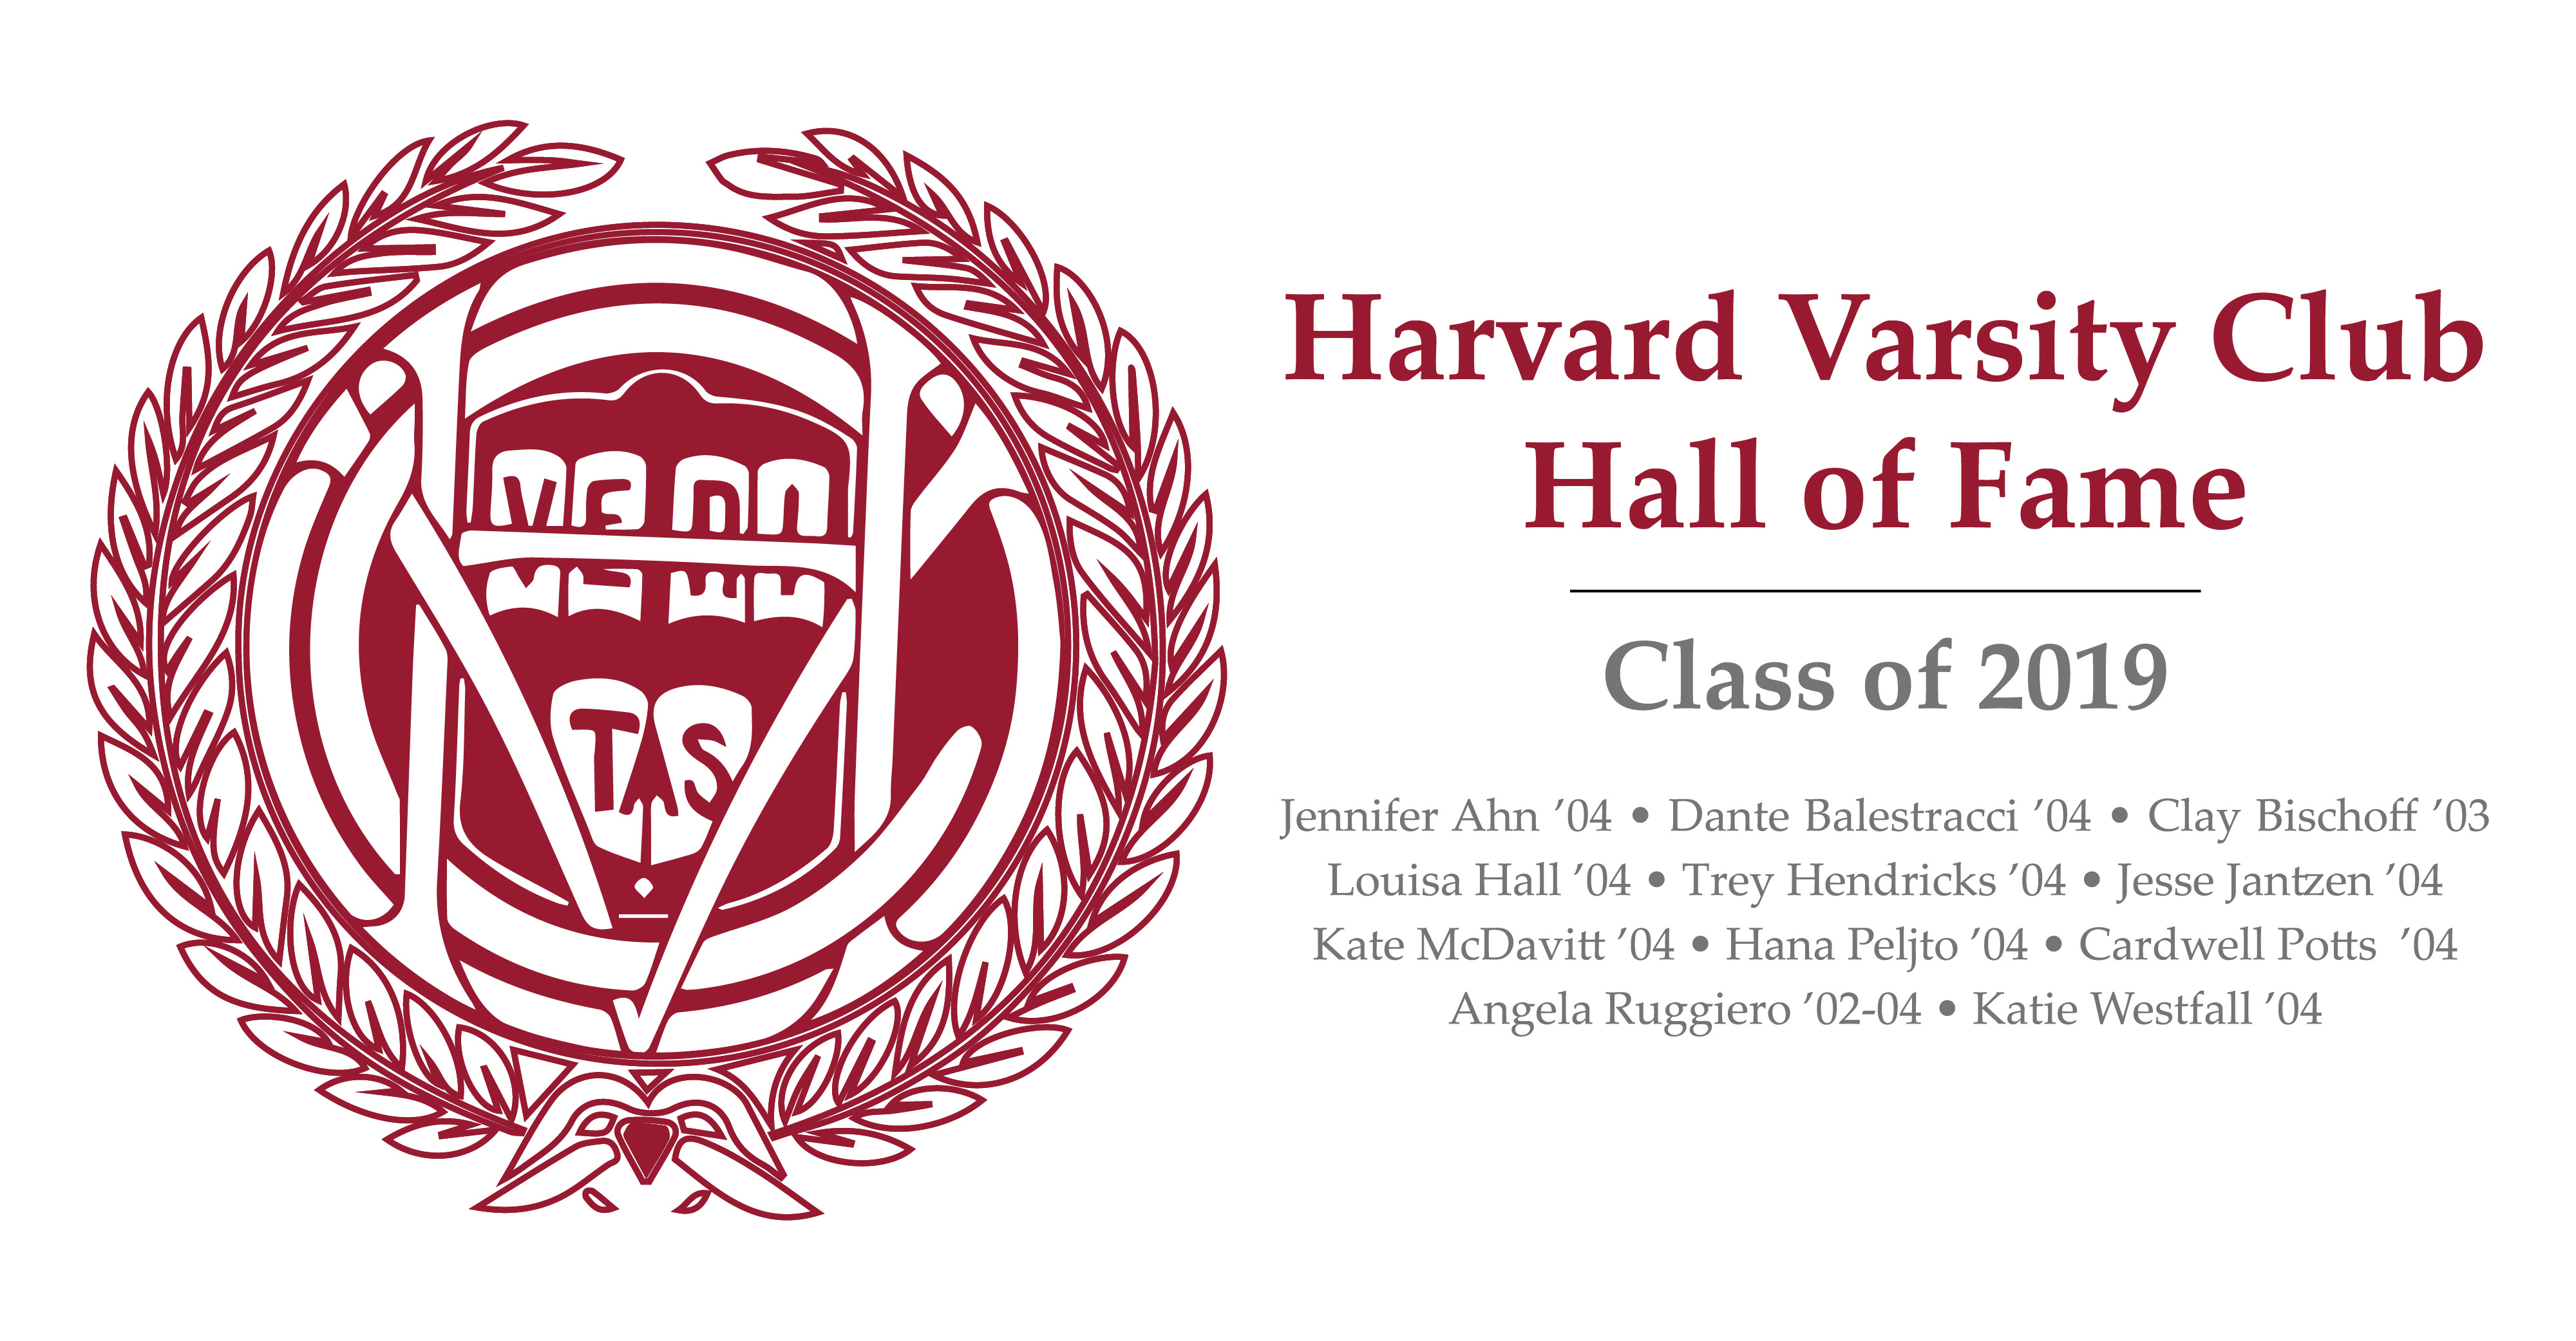 11 of Harvard's Greatest Announced as HVC Hall of Fame Class of 2019